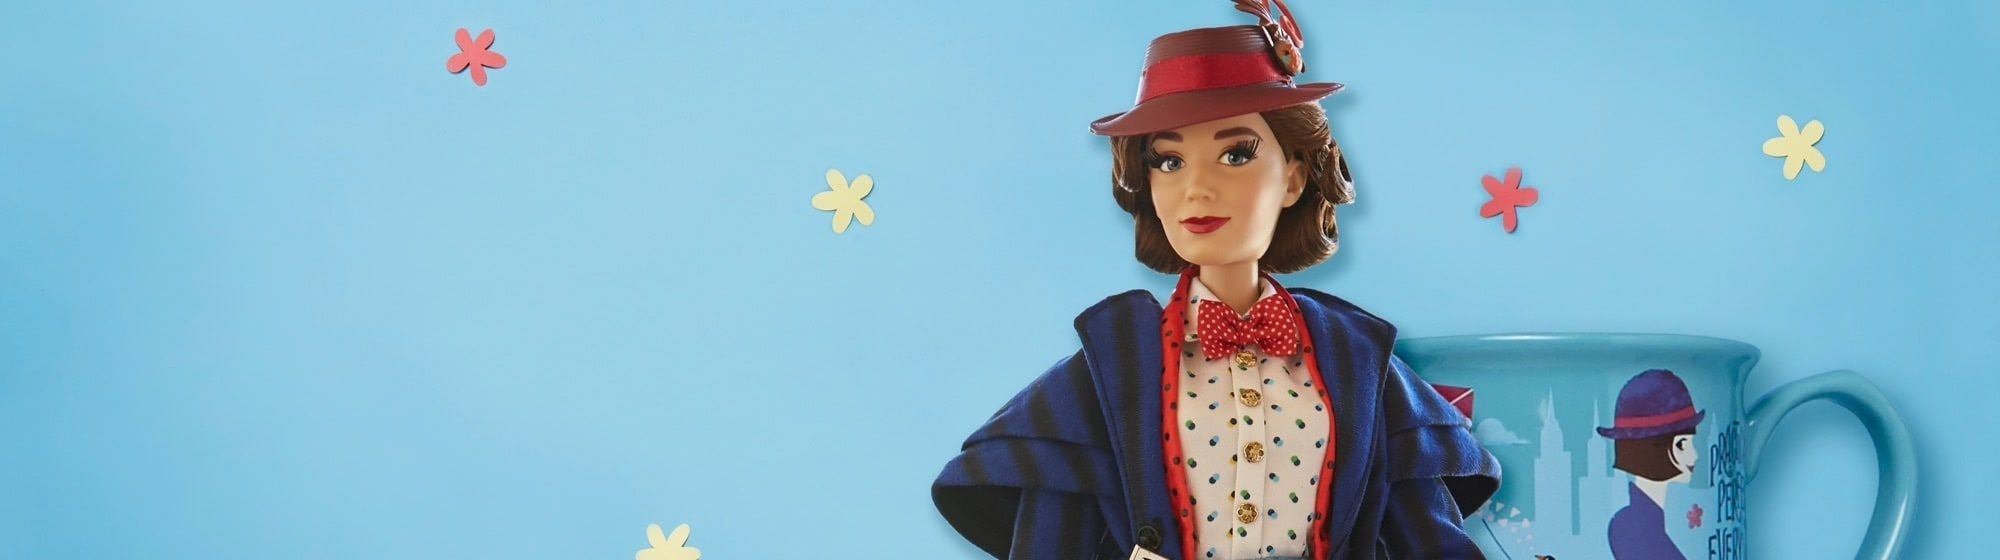 Mary Poppins | Featured Product